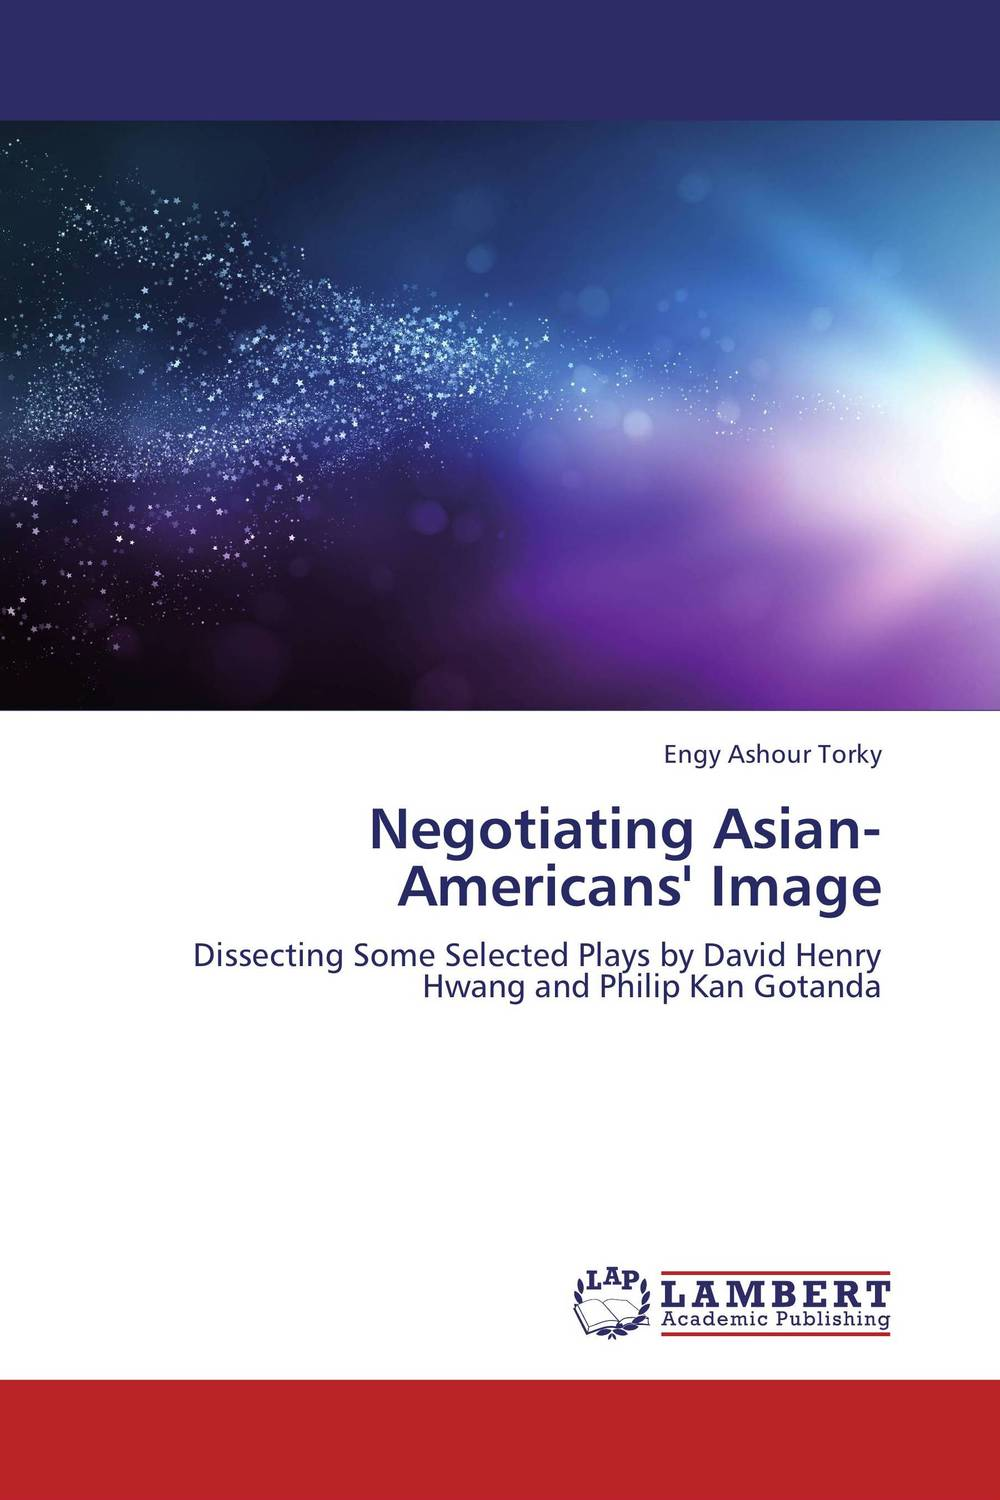 Negotiating Asian-Americans' Image